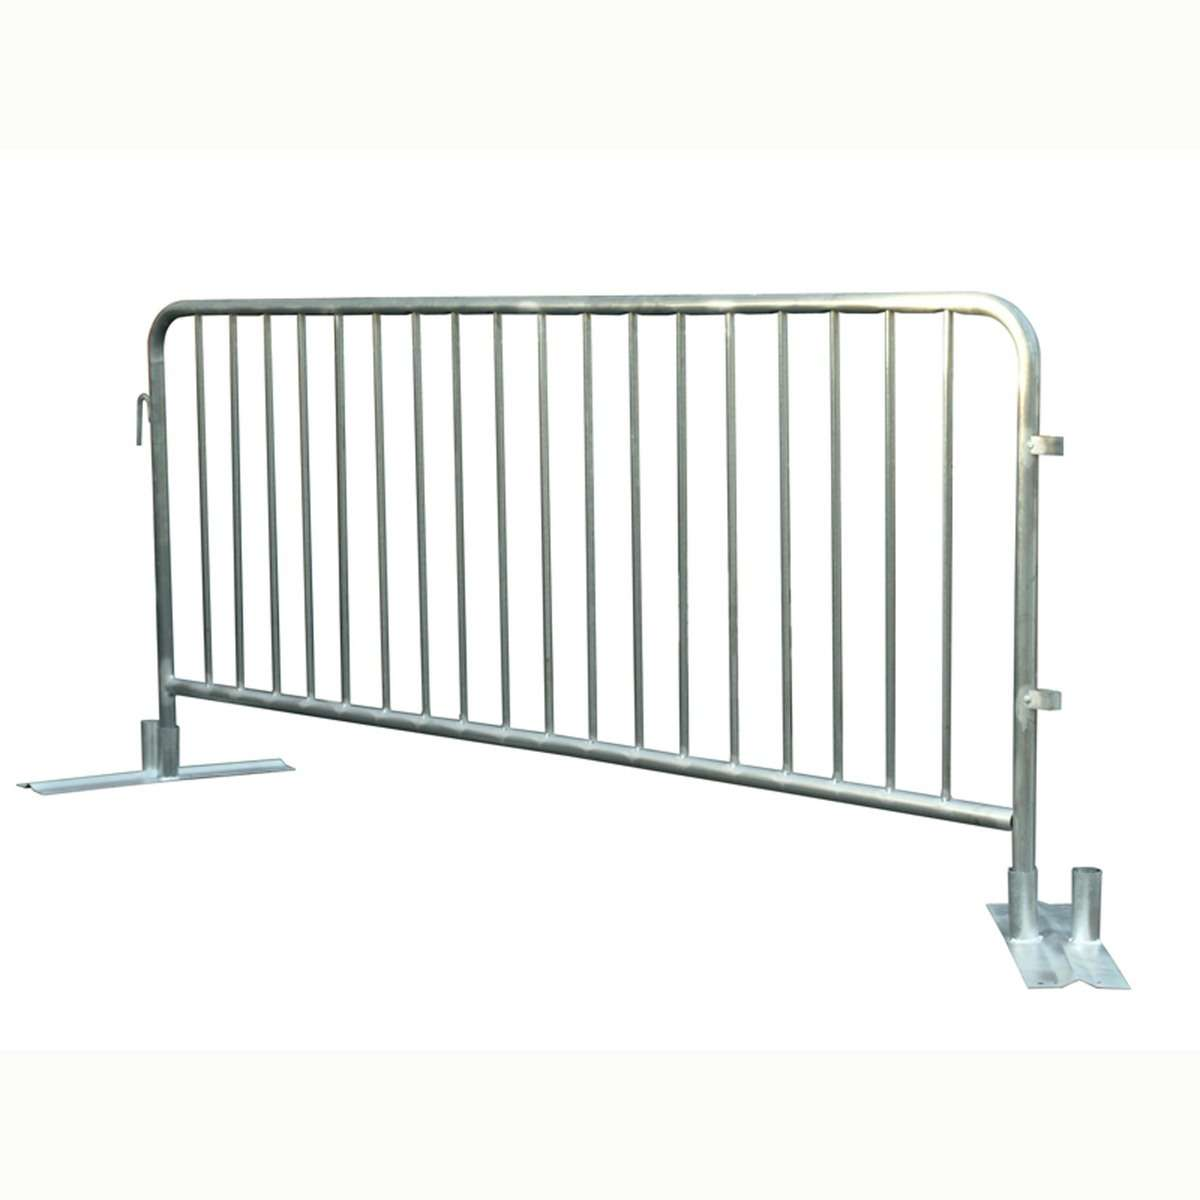 Crowd Barrier 2 5m Smiths Hire